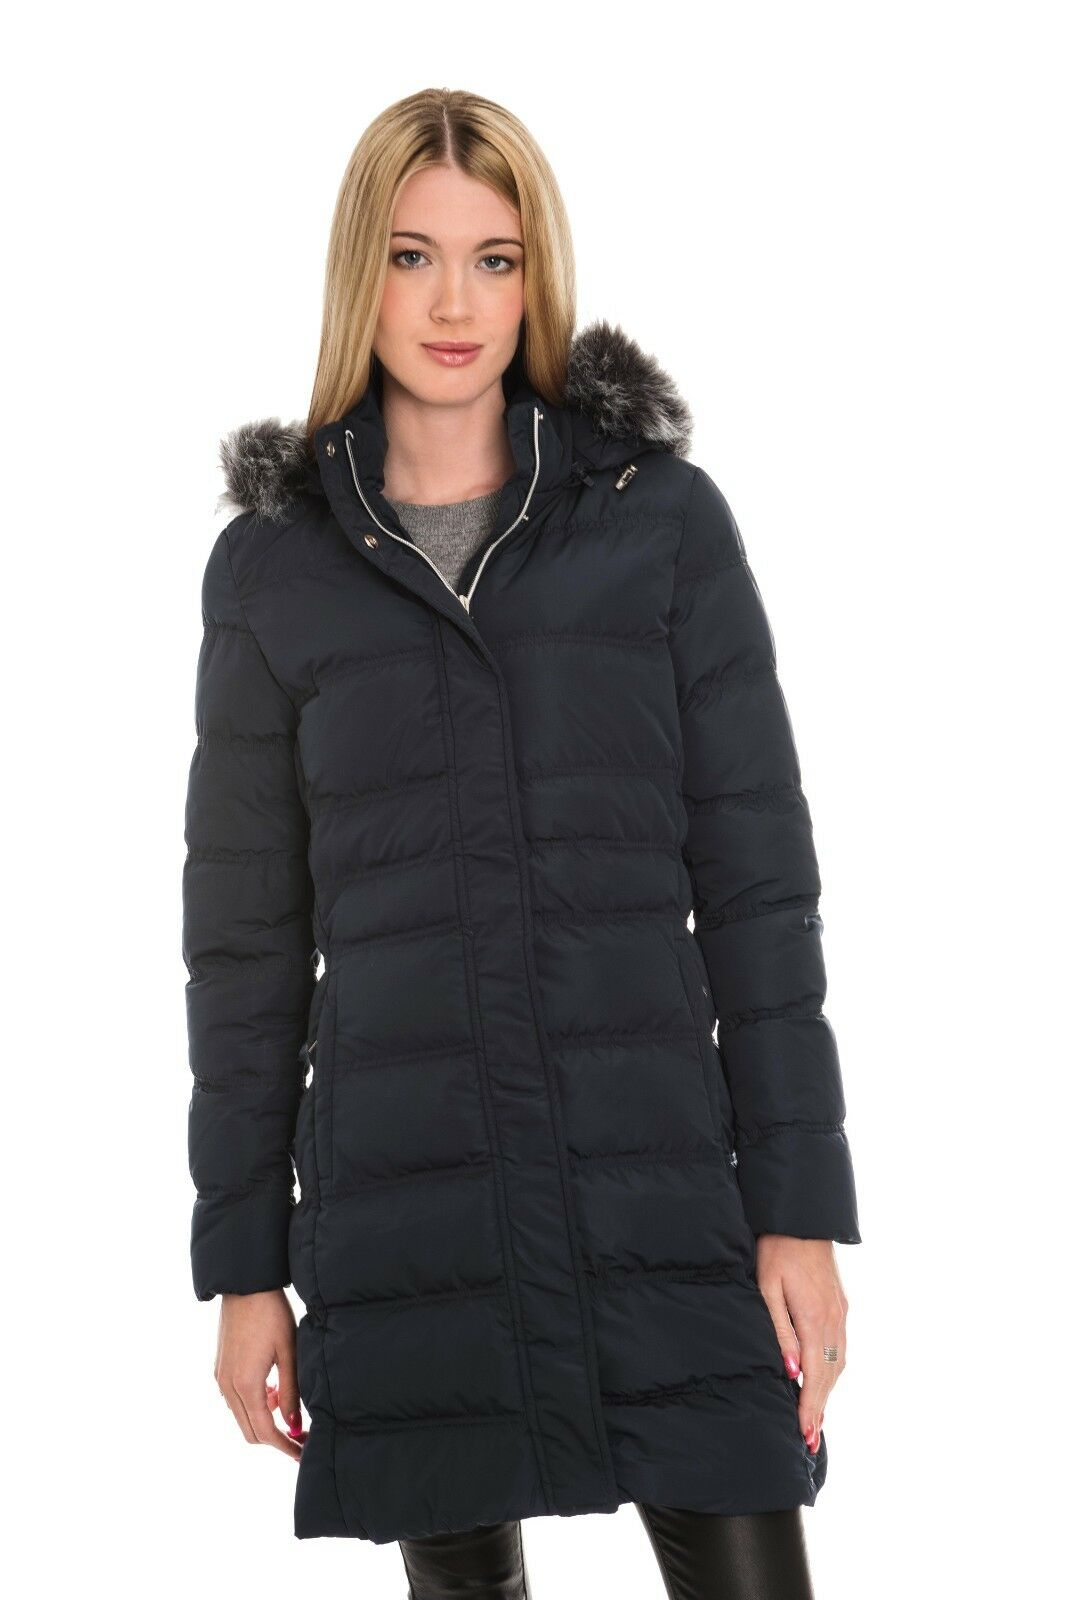 Rino & Pelle Women's Roanna Quilted Long Coat - Navy bluee